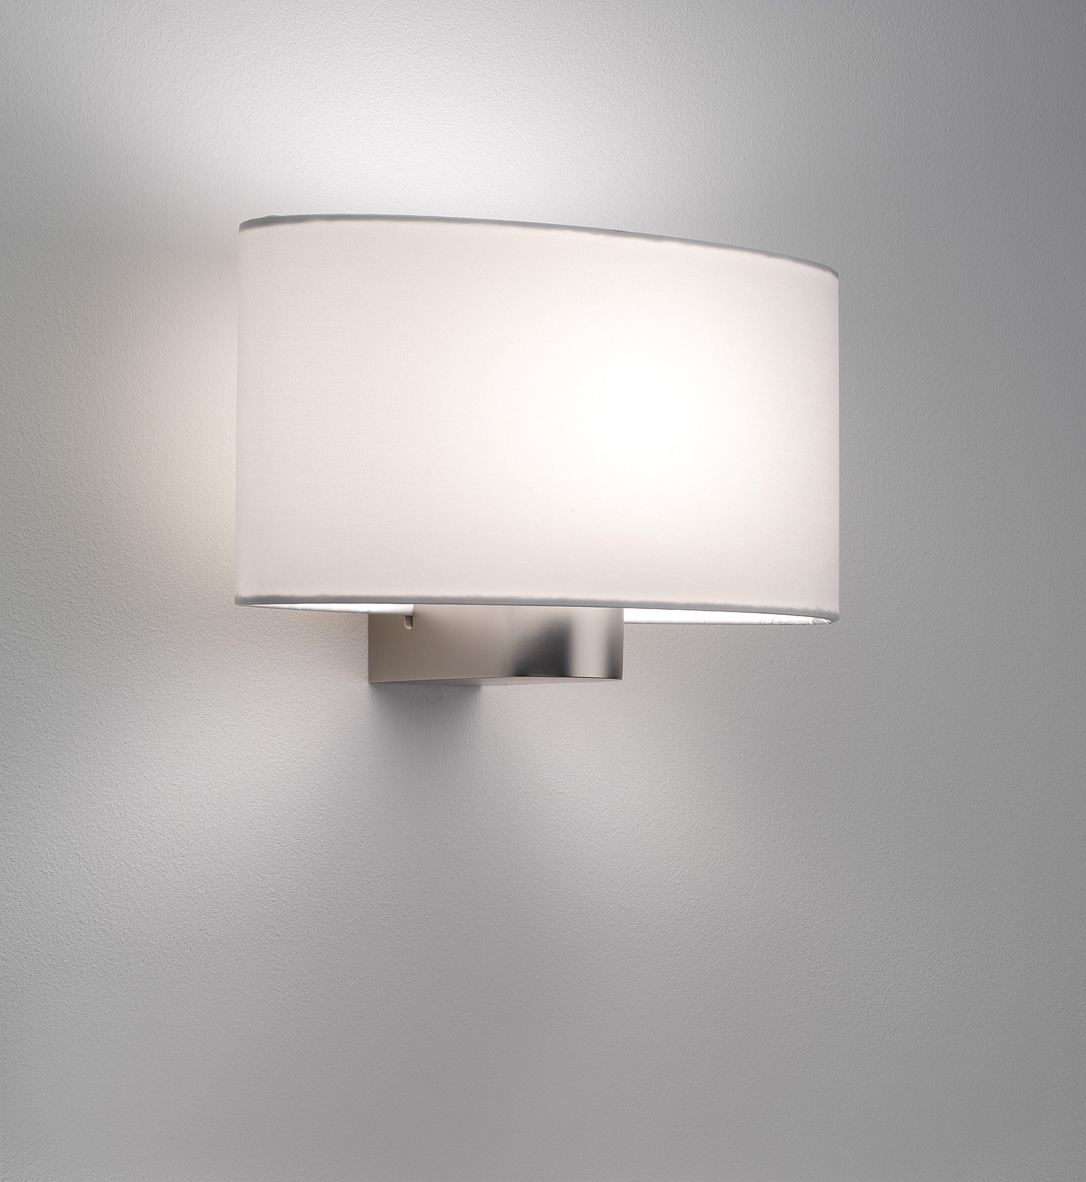 Lamp Shades Wall Lamps : Astro Napoli 0881 oval lampshade wall light 60W E27 matt nickel shade options eBay